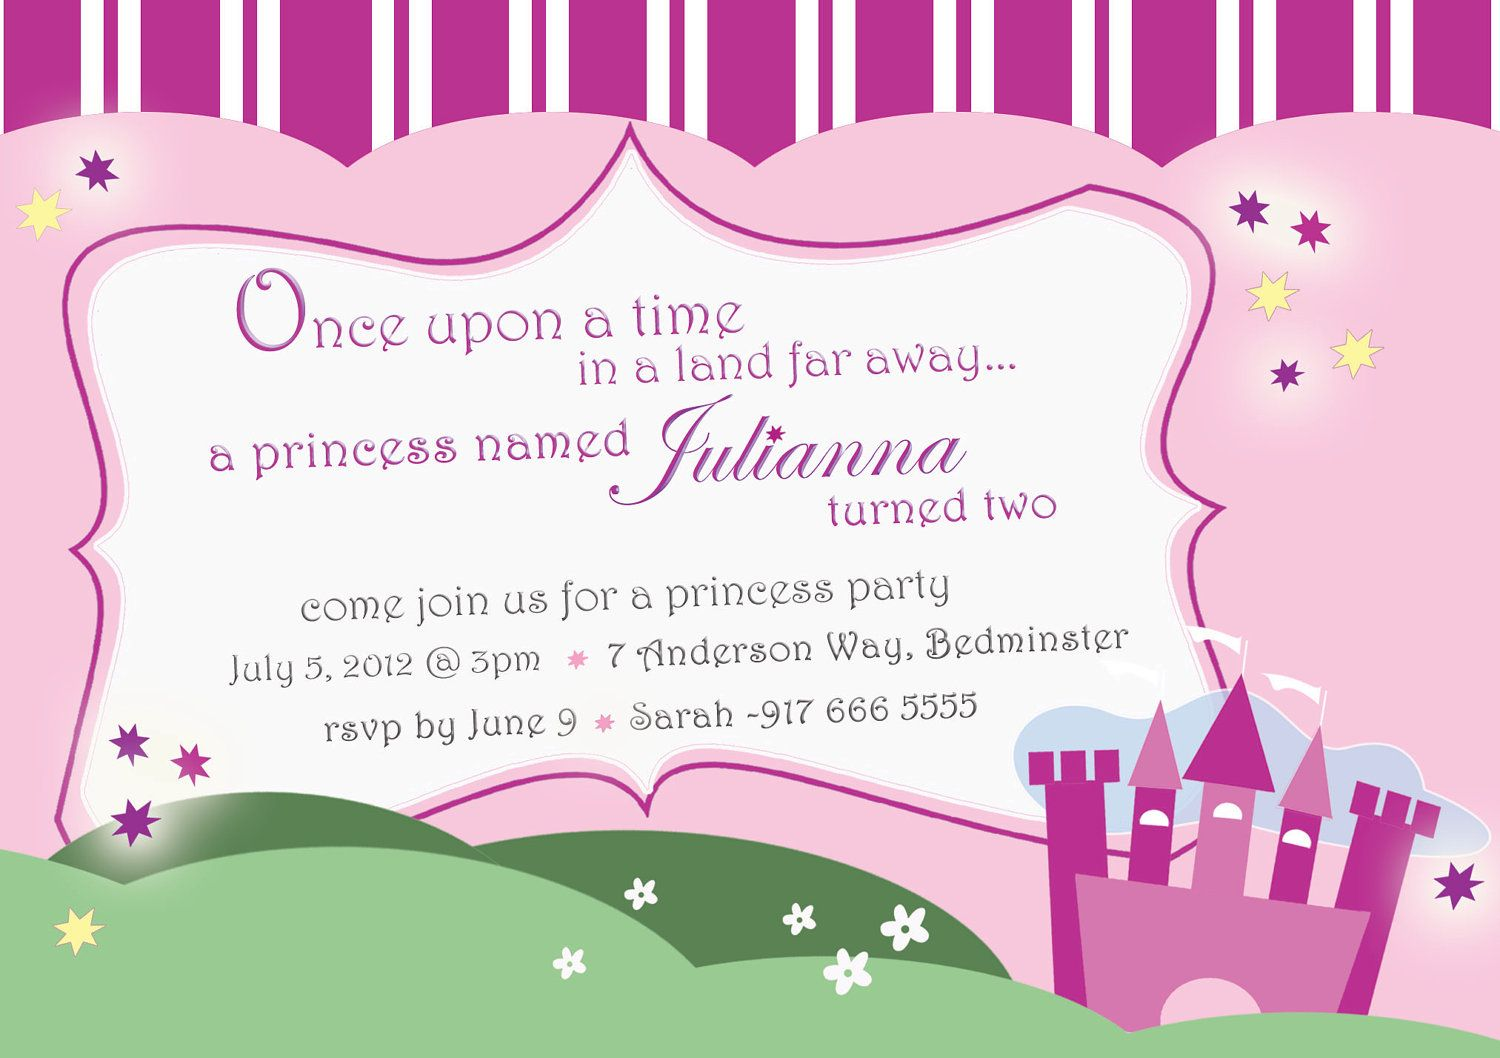 How to Create Princess Party Invitations Modern Designs ...